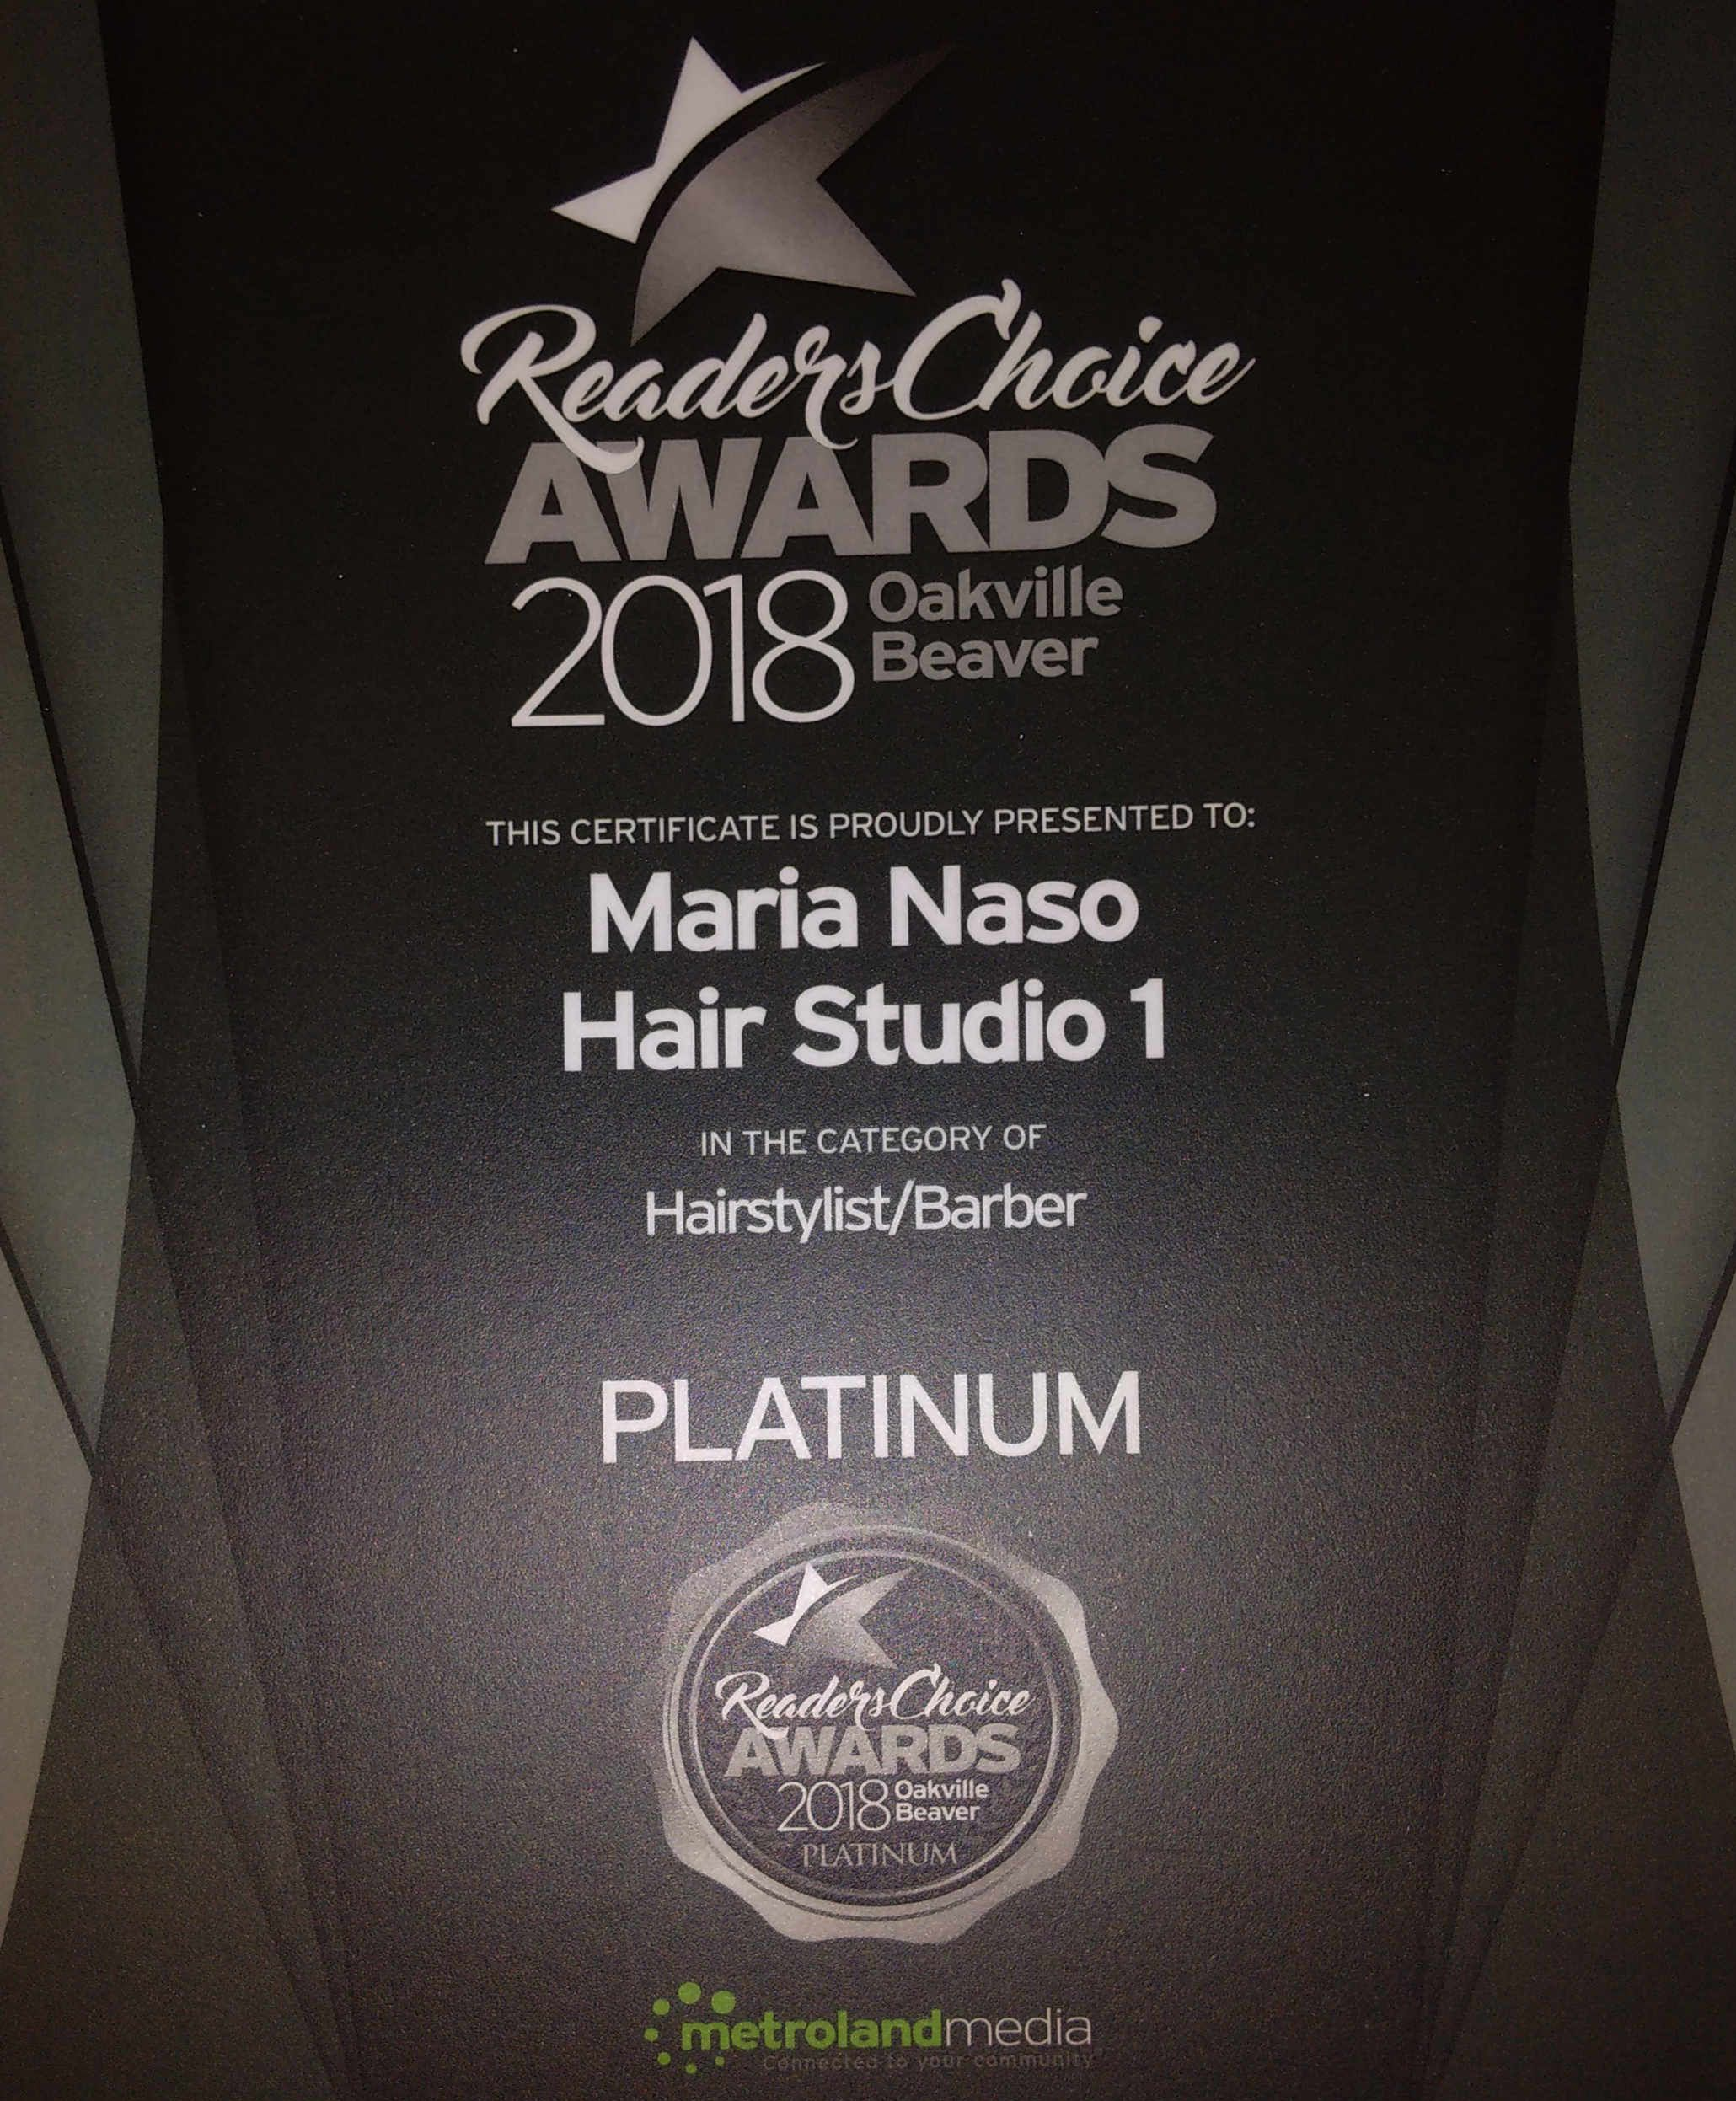 Reader's Choice Award - Platinum